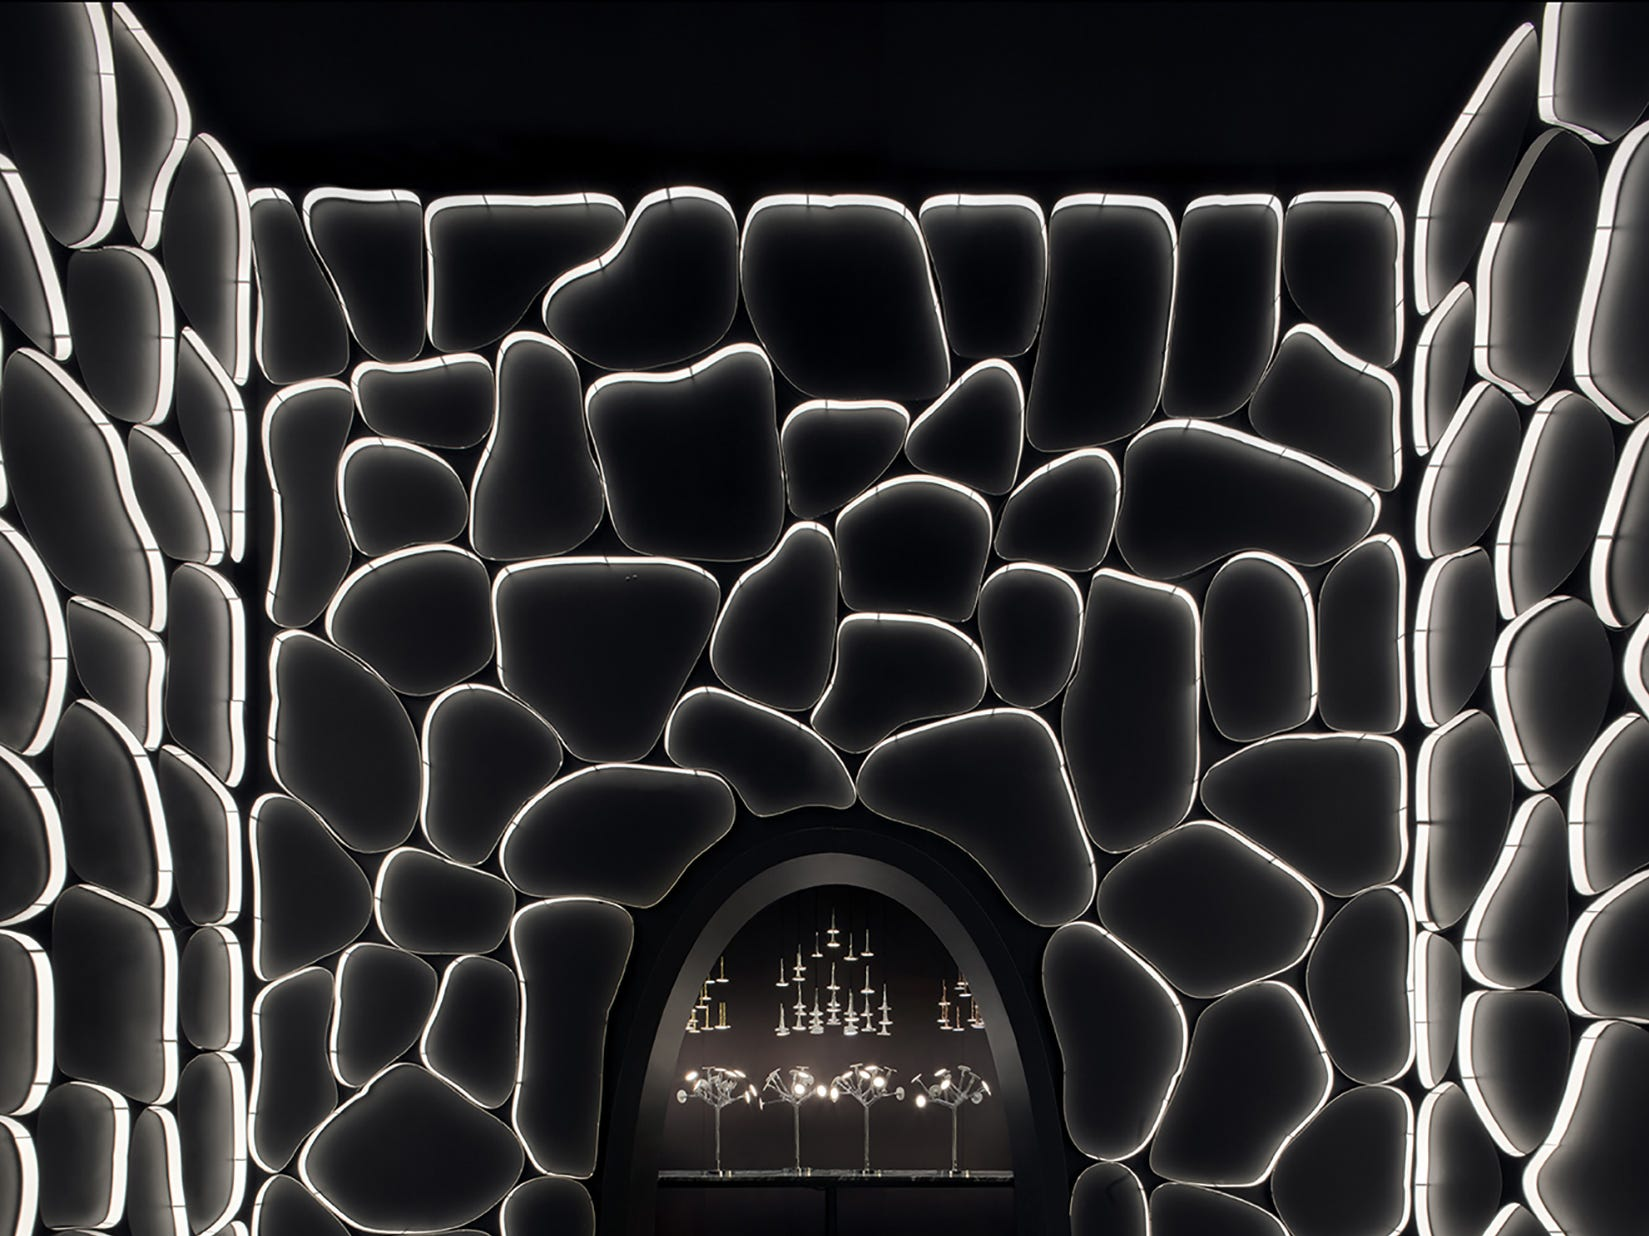 The BlackBody brand is an innovator in OLED technology. Here, bendable OLEDs create a dramatic experiential environment at Maison et Objet 2016.